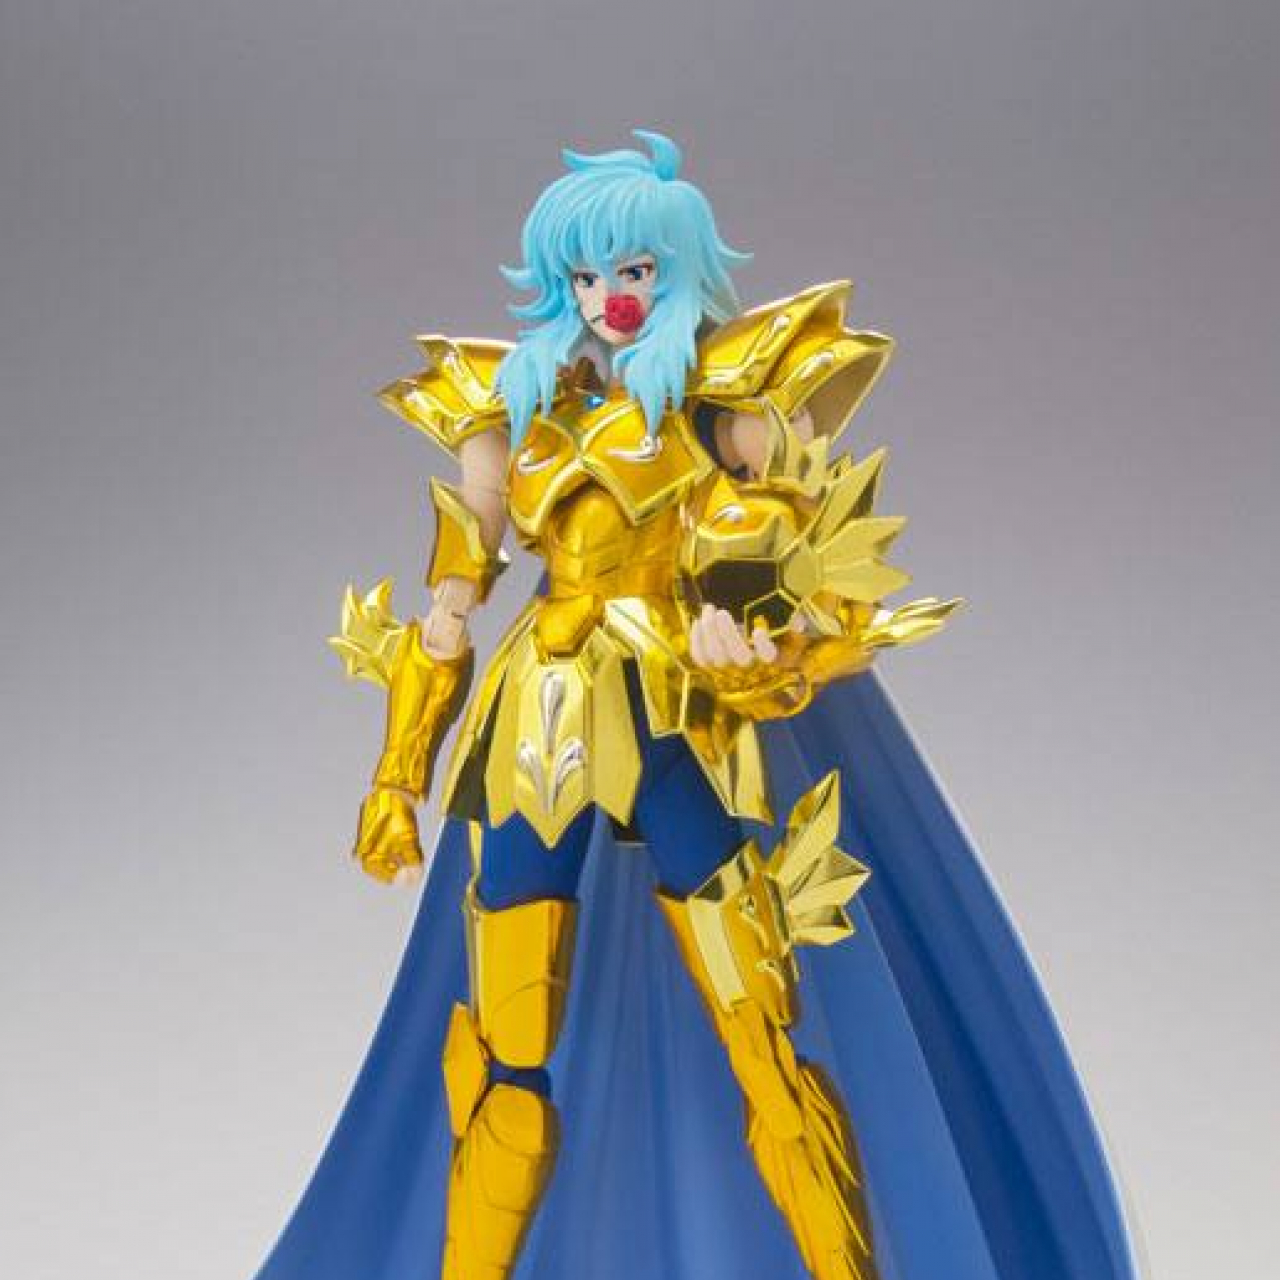 Saint Seiya Saint Cloth Myth EX Action Figure Pisces Aphrodite Revival Ver. 18 cm